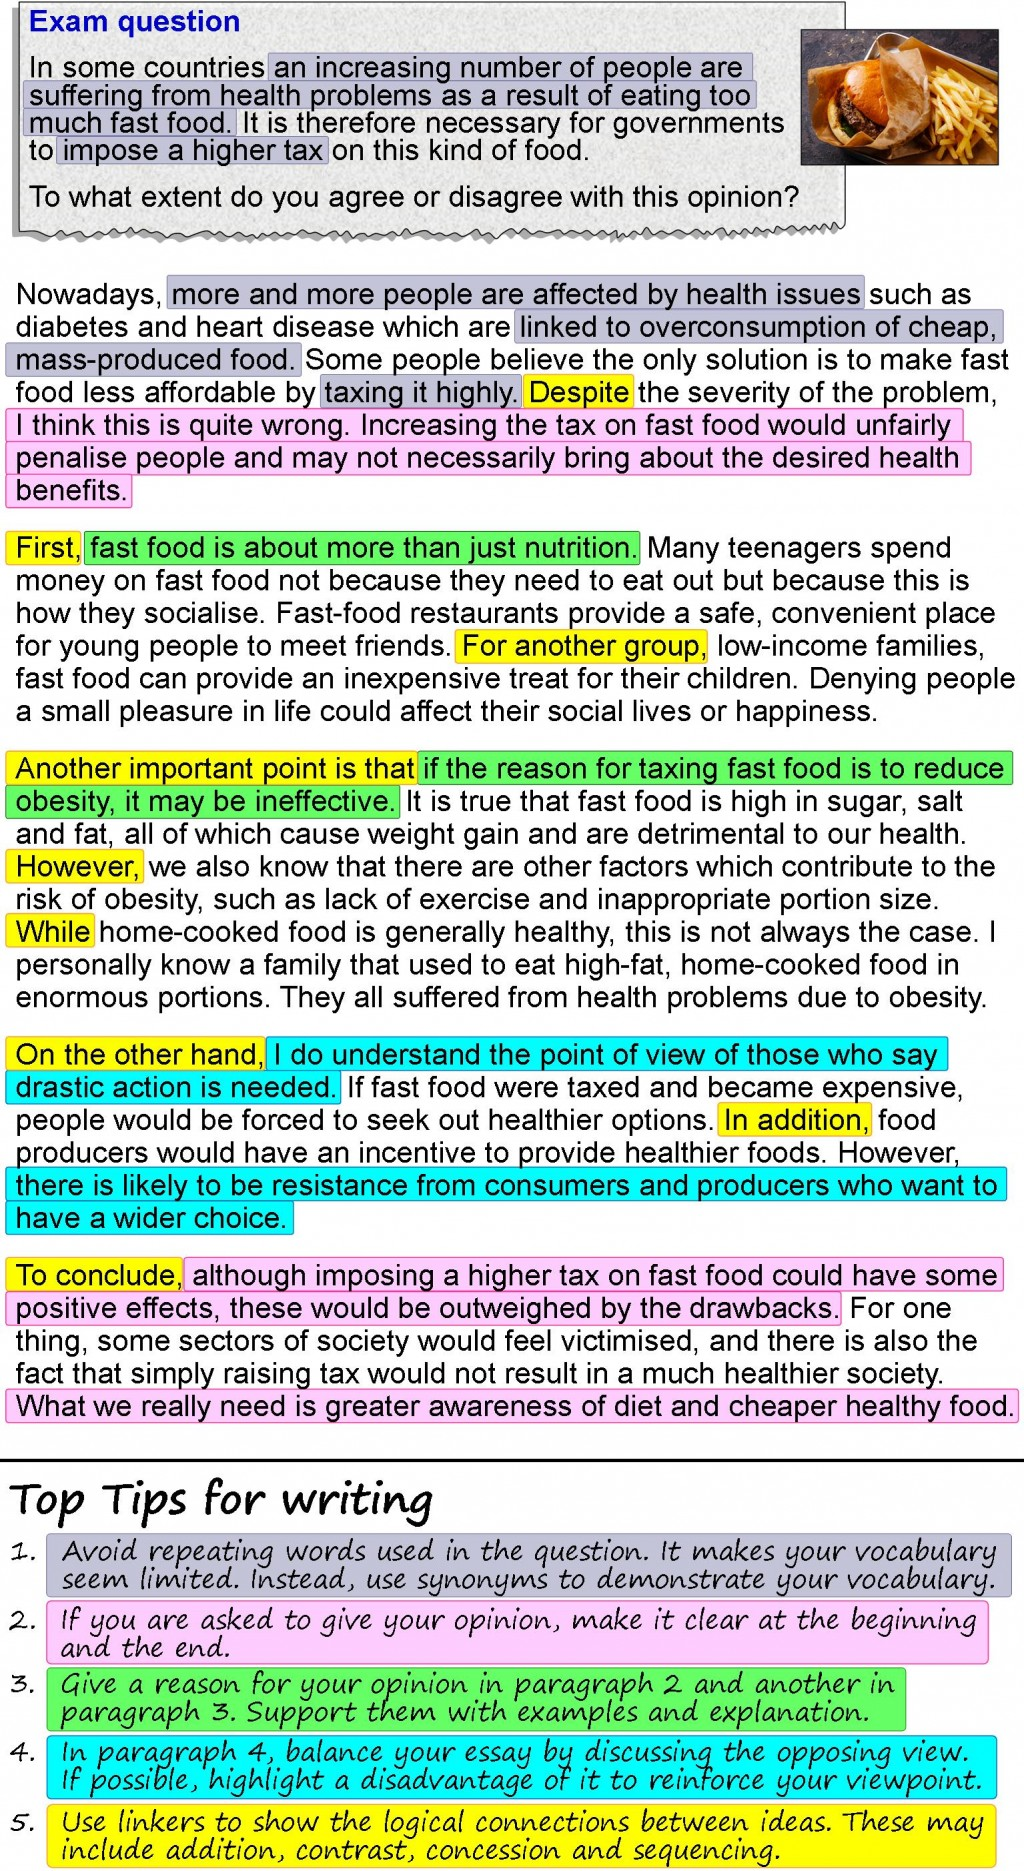 001 Food Essay Example An Opinion About Fast 4 Best Waste Conclusion Healthy Topics In Hindi Large